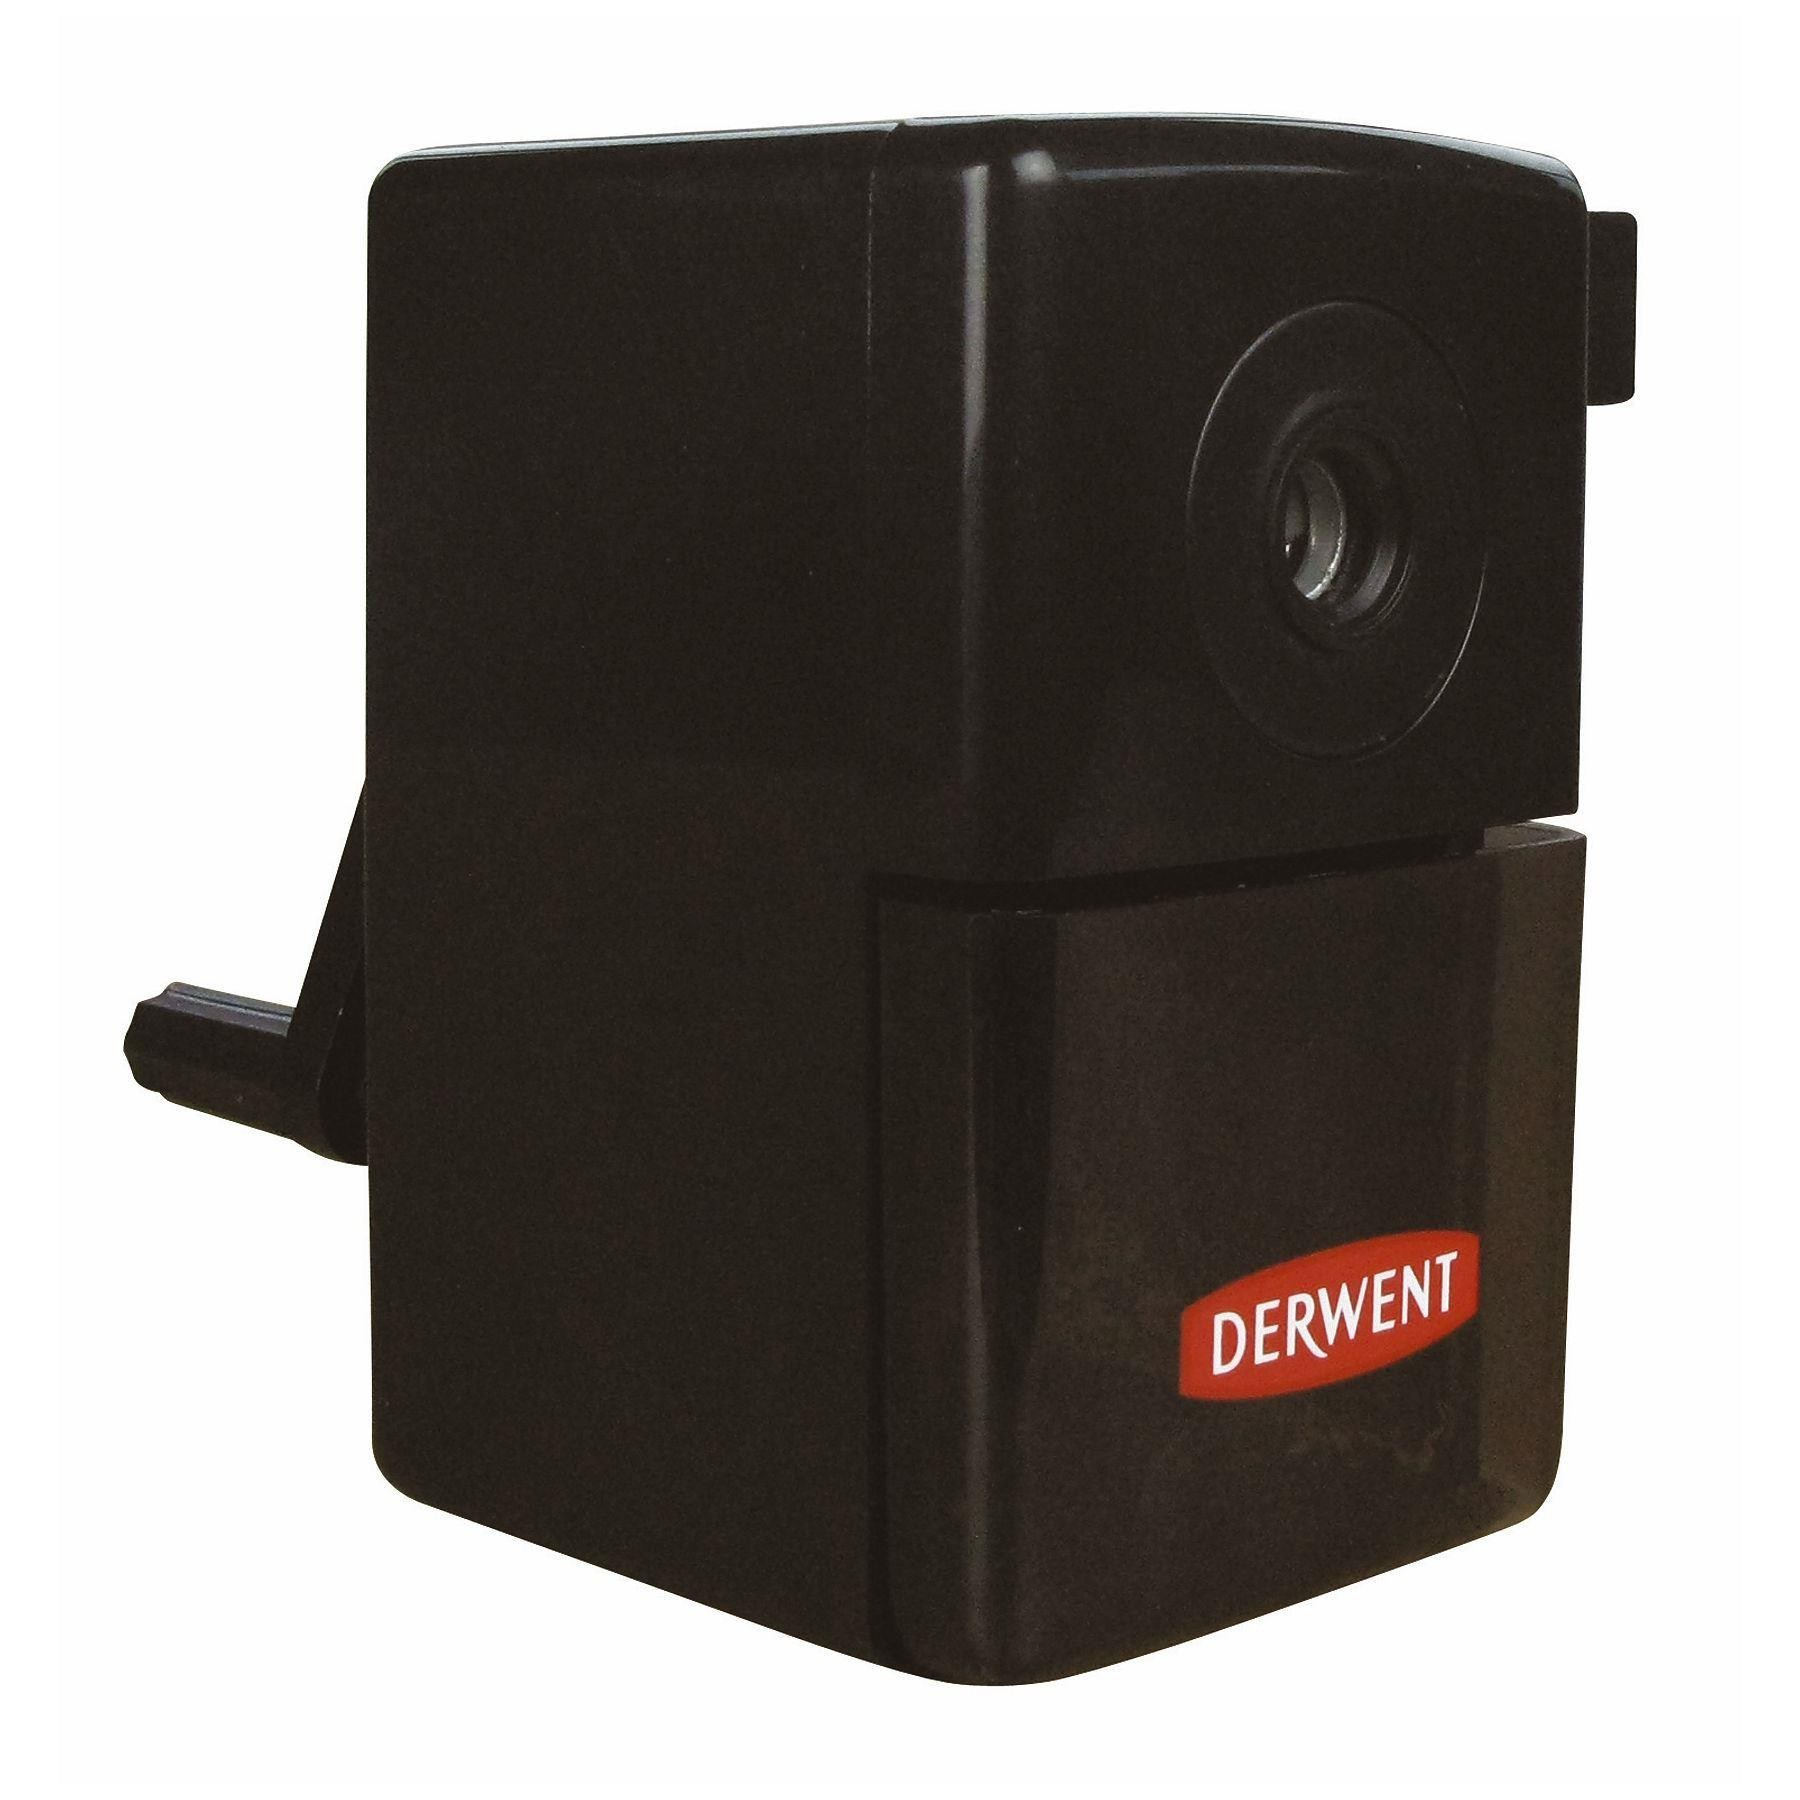 Derwent Super Point Mini Manual Helical pencil Sharpener